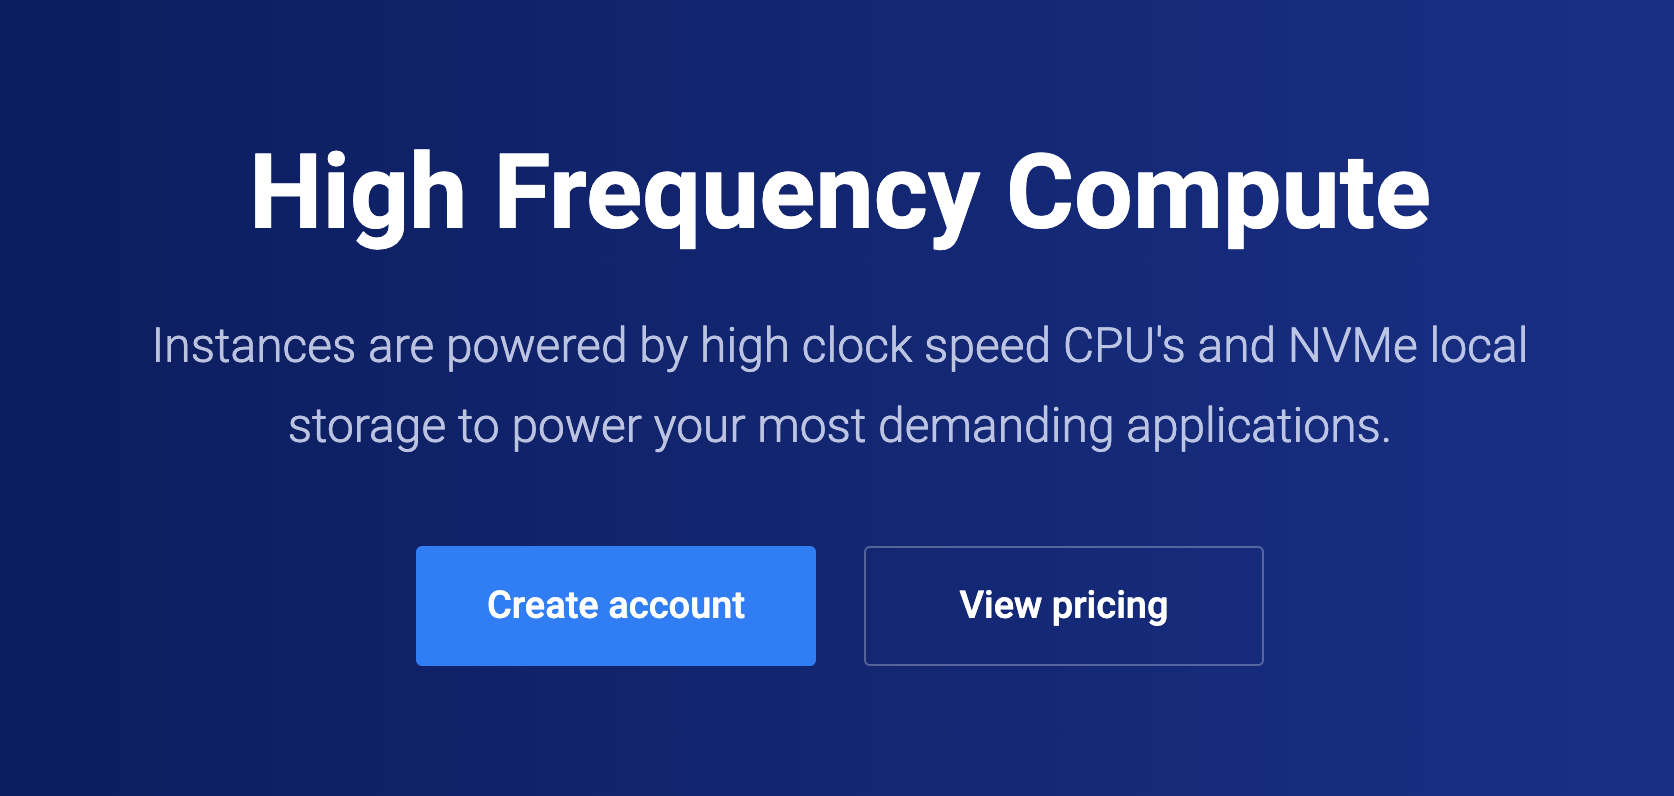 vultr-high-frequency-offer